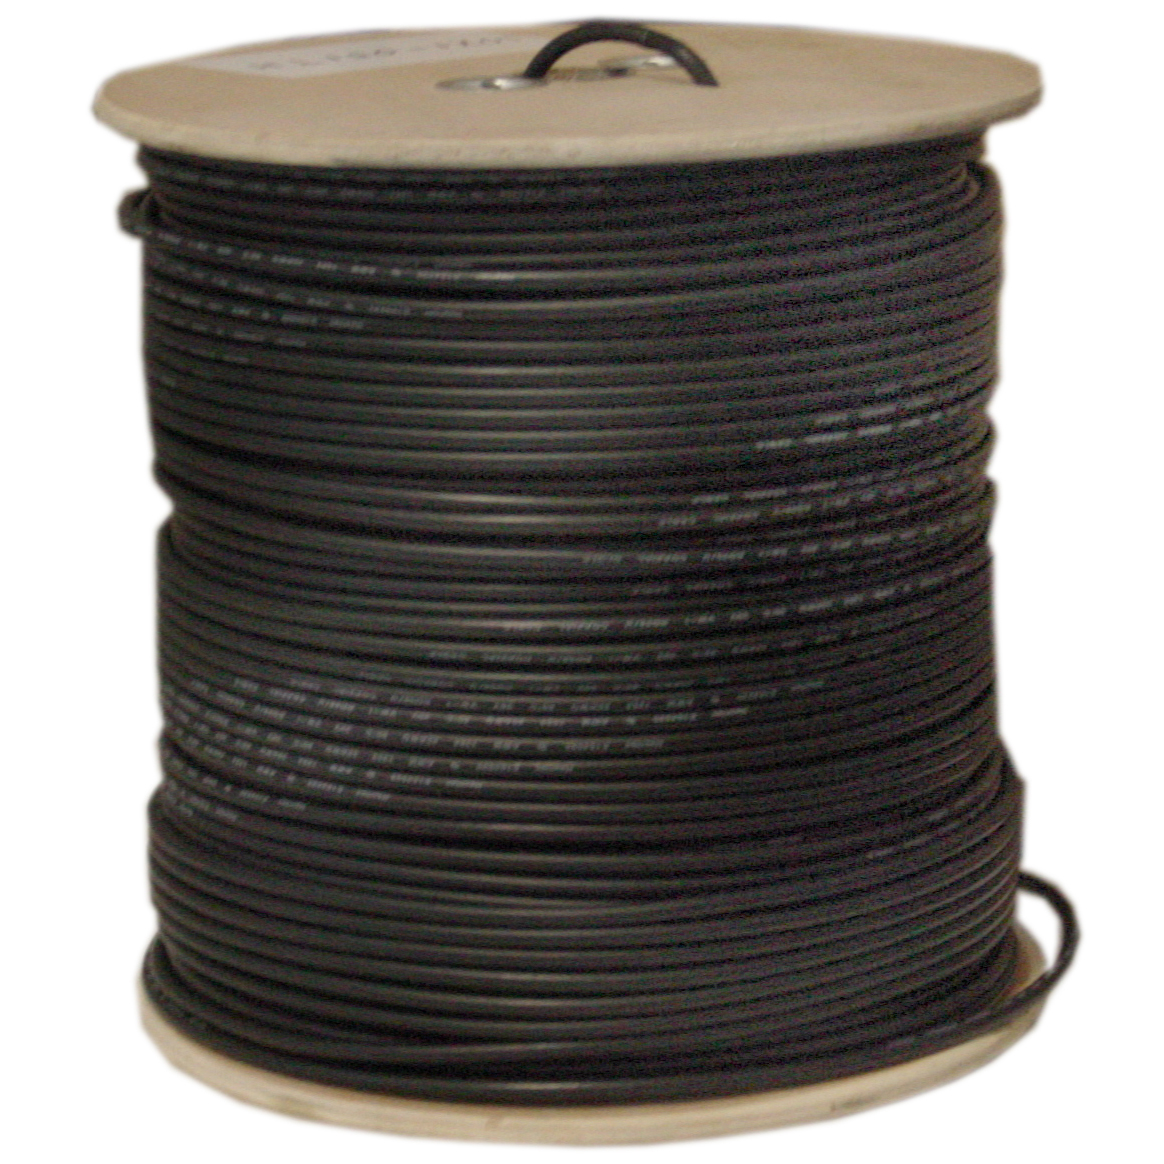 500ft Black RG59 18/2 Siamese Cable Spool, Copper Conductor